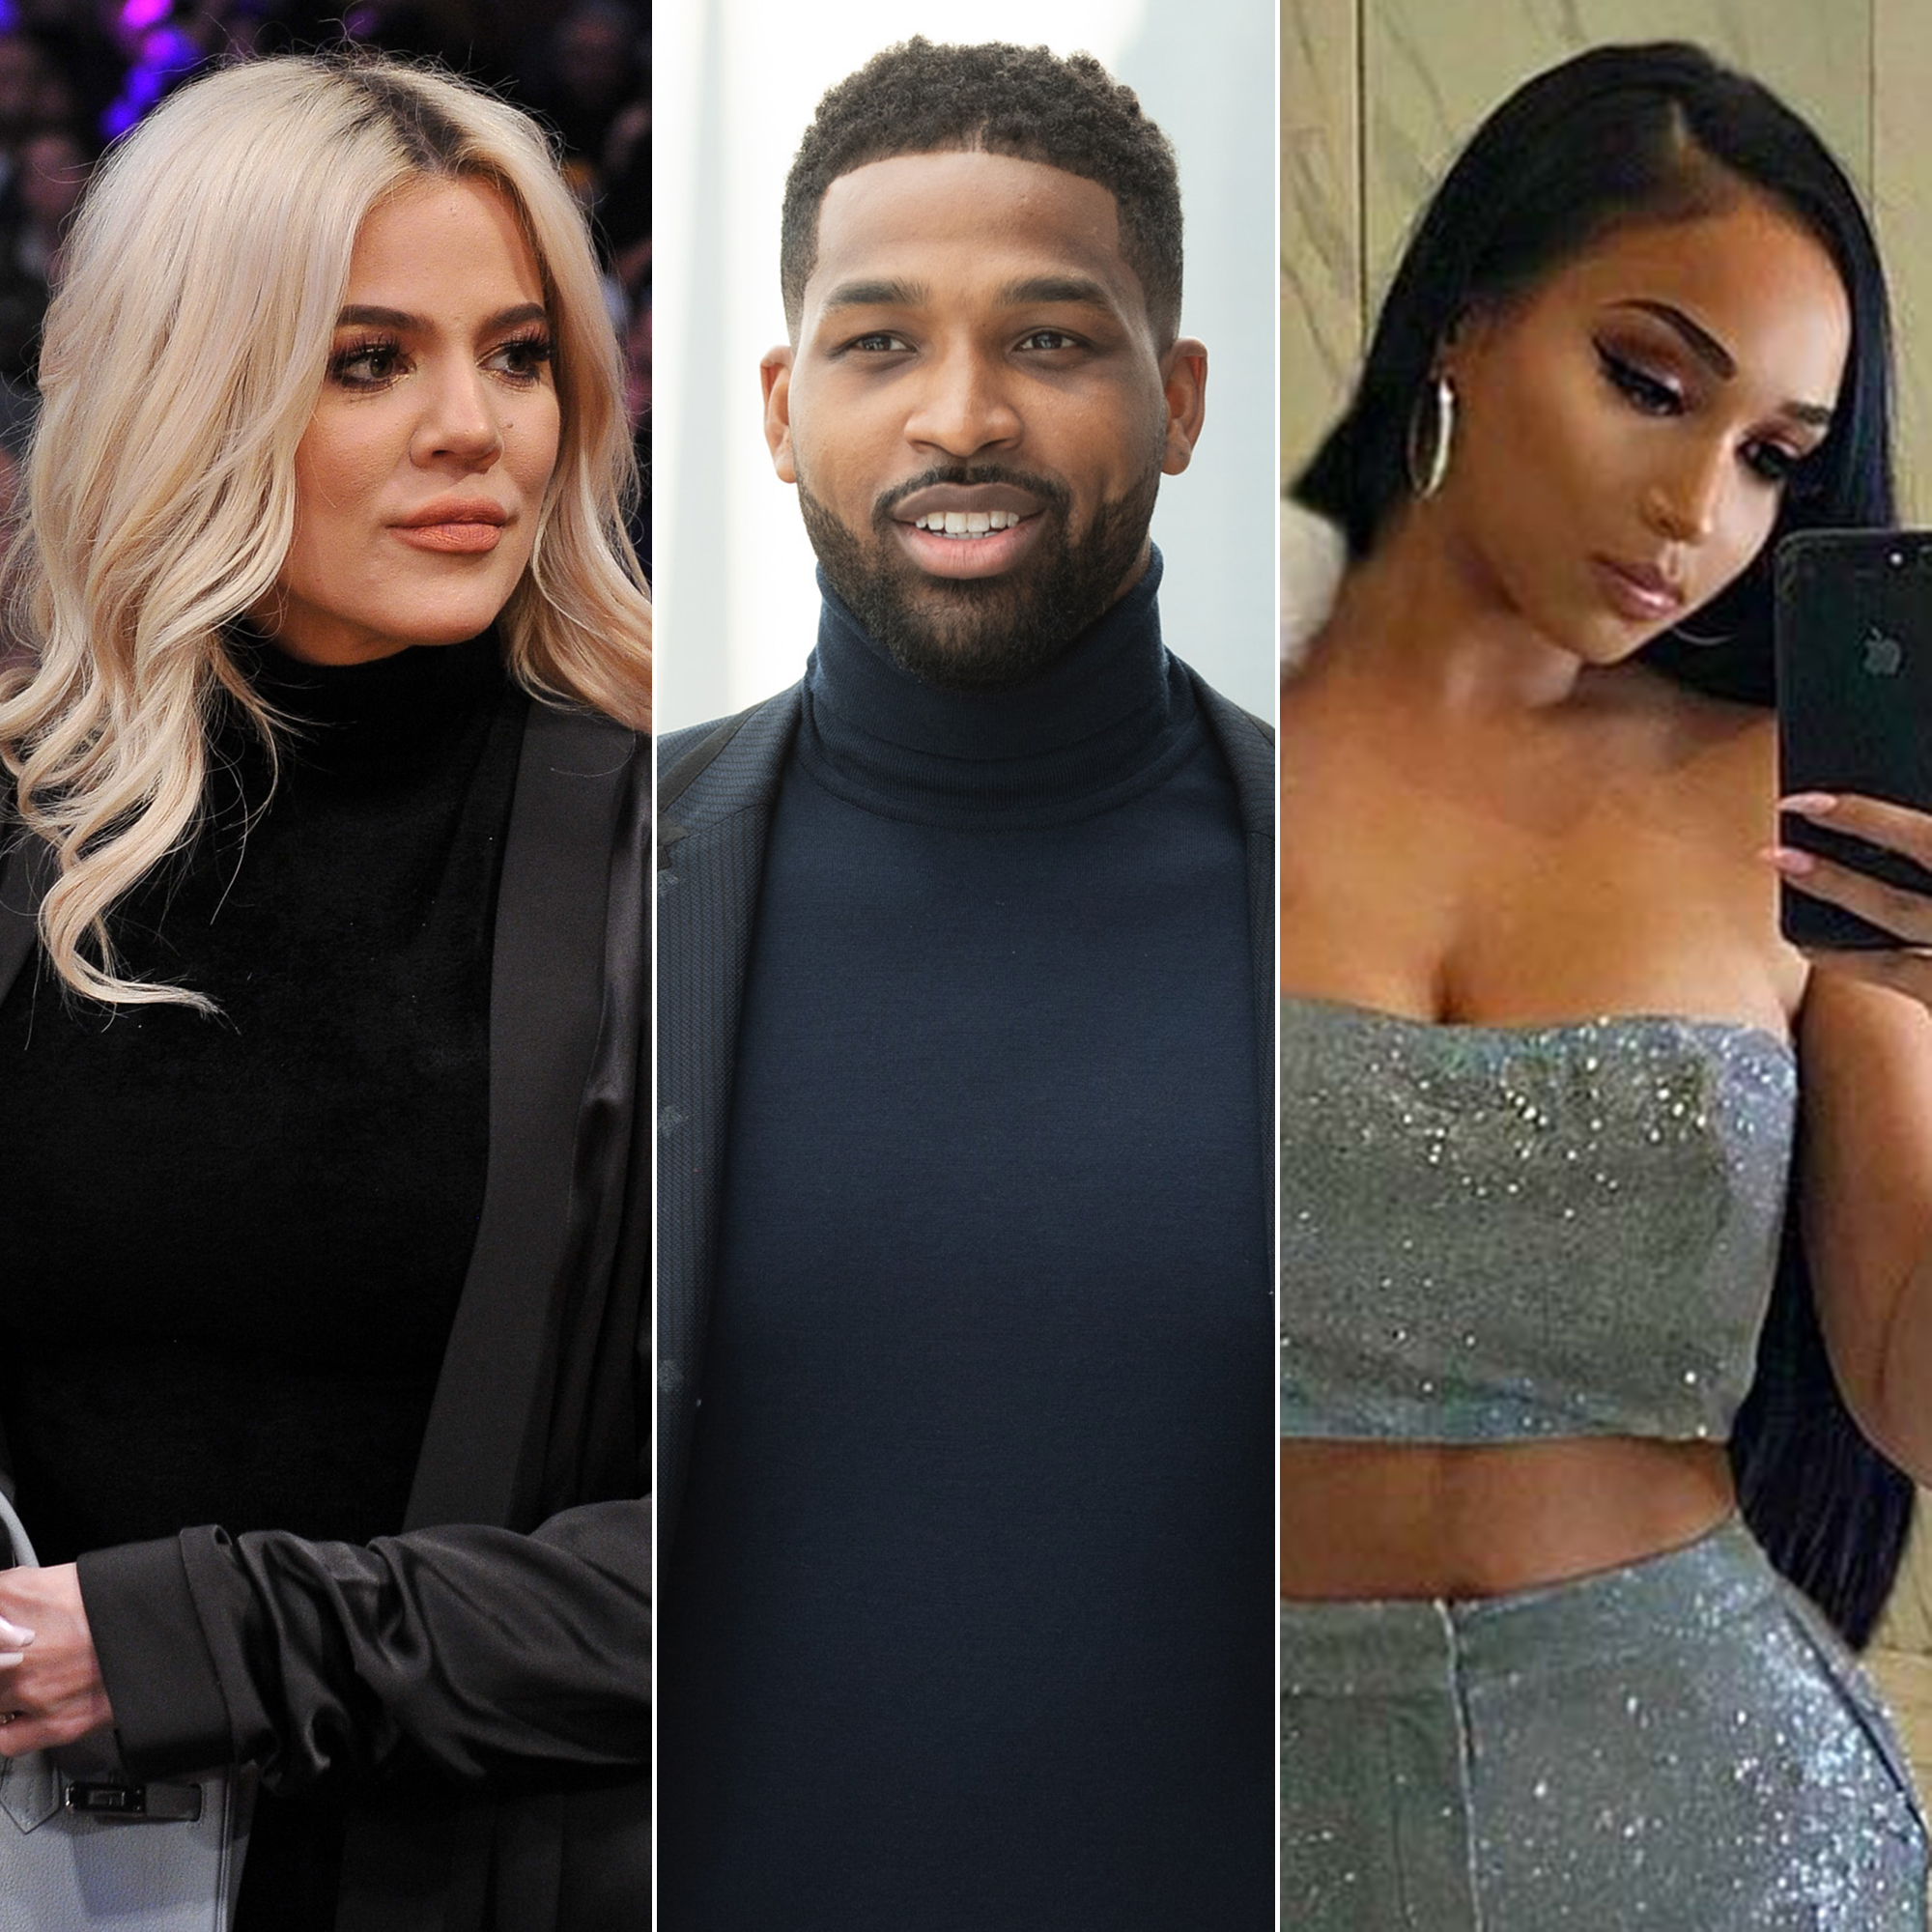 Tristan Thompson 'Crashed' at Ex Jordan Craig's House After Khloé Kardashian 'Kicked Him Out Several Times'